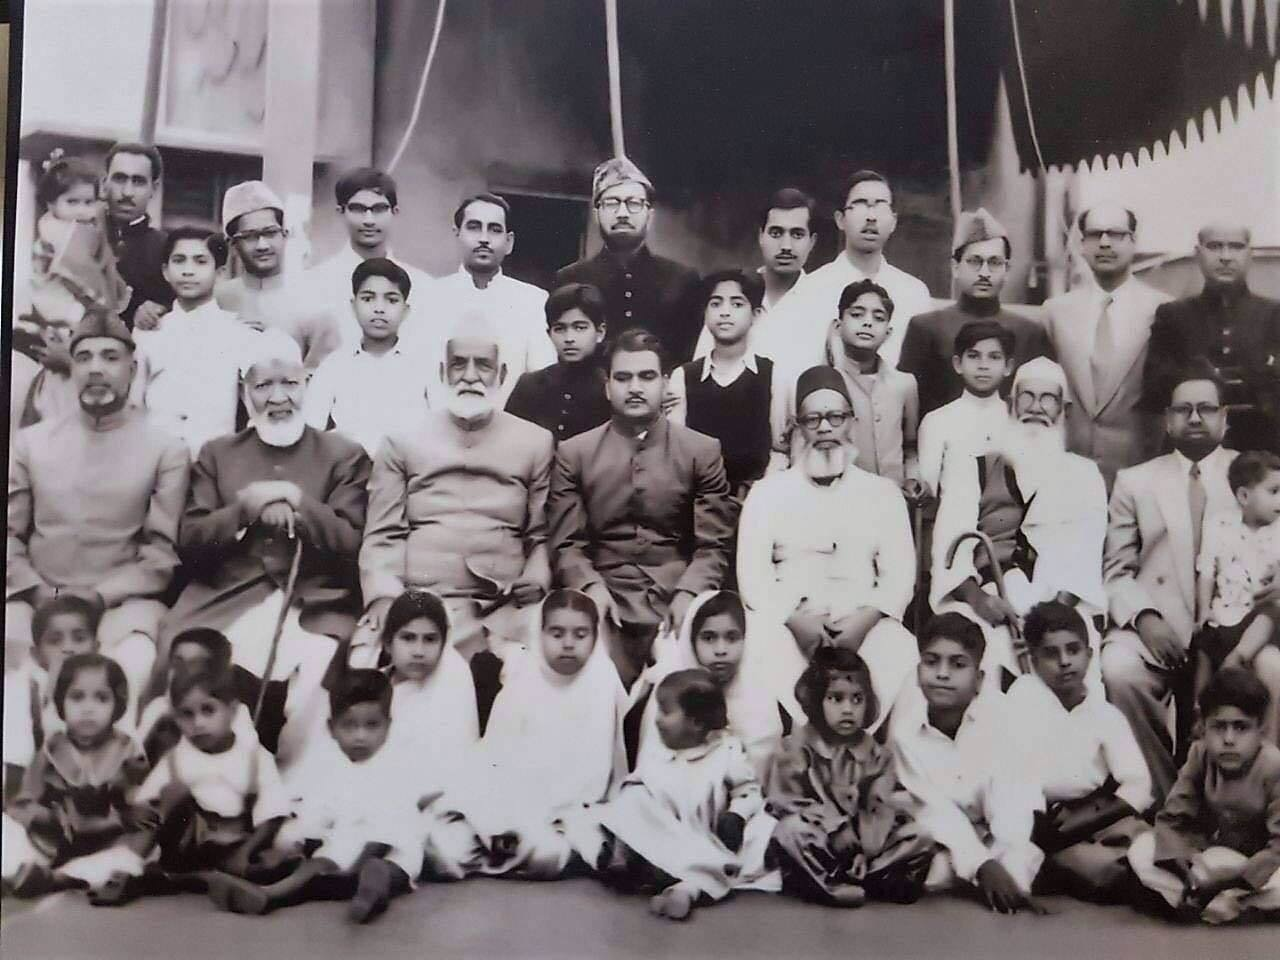 Author's family, with her grandfather fifth from left, third row from top. –Photo by the author